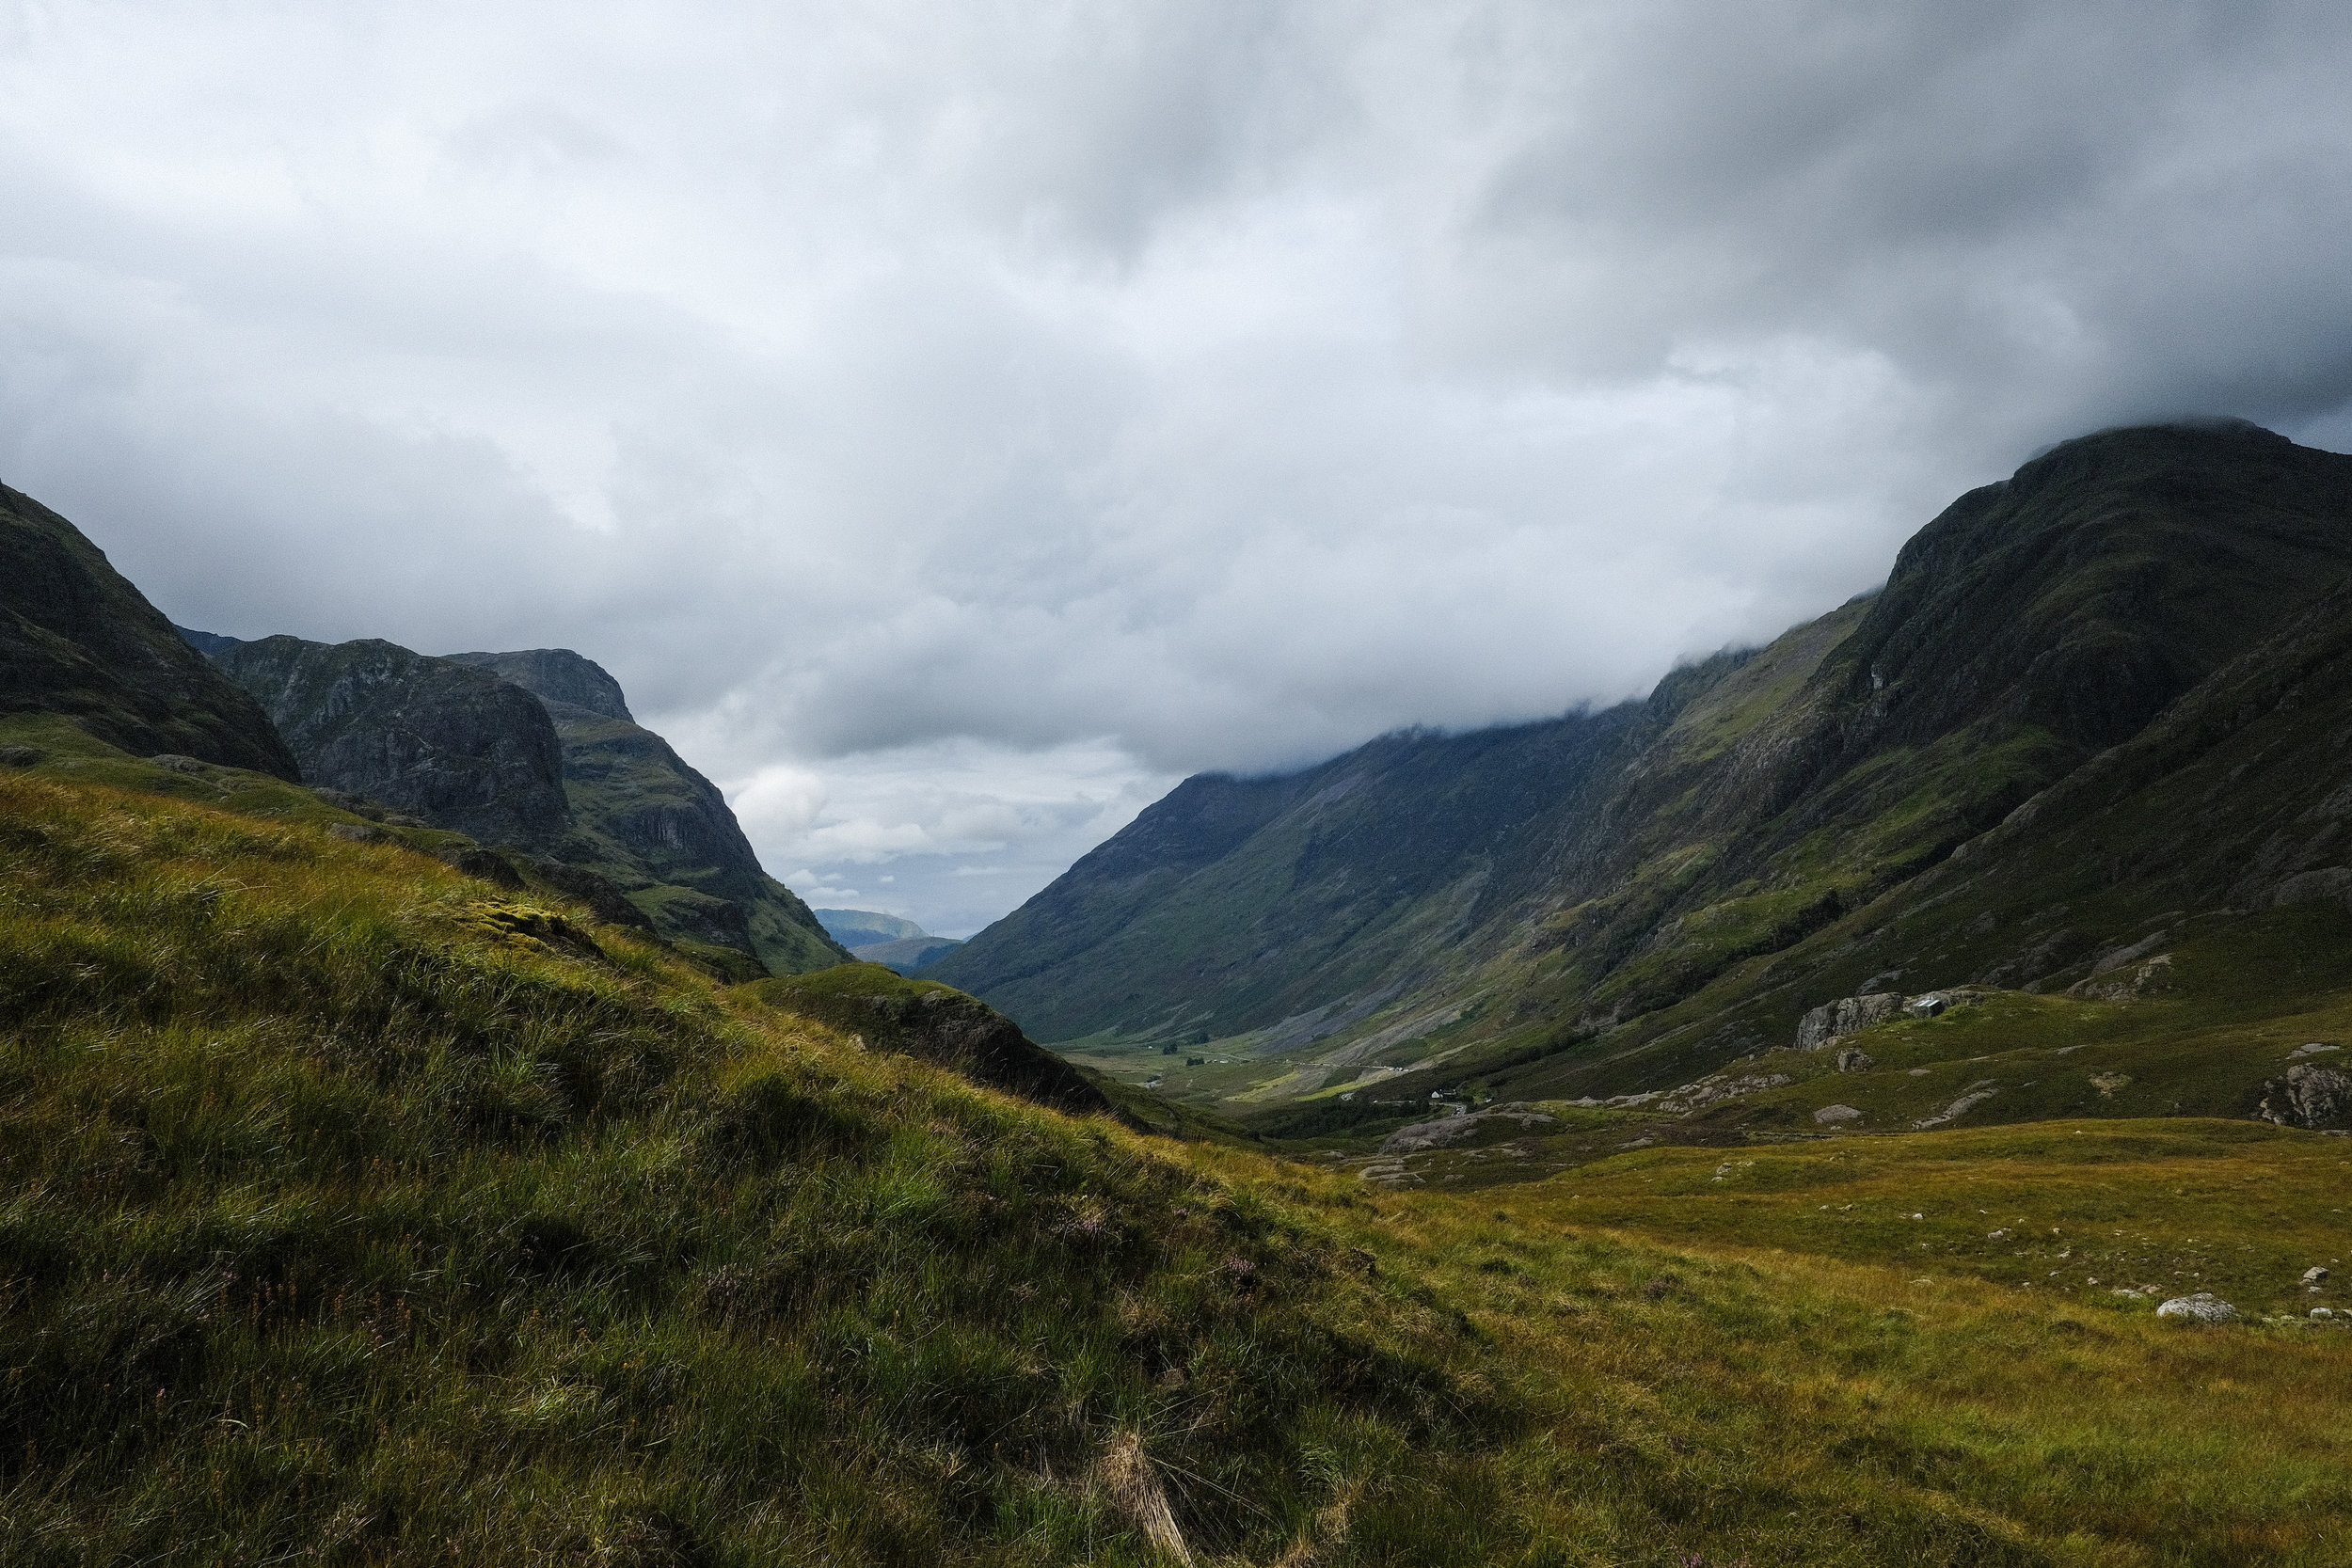 The escape from Jura took me down through Glencoe where the A82 cuts through the spectacular hills, known as the Three Sisters. One of these sisters features Bidean nam Bian,the highest point in what was once Argyll county.© Adam McCauley | 2017